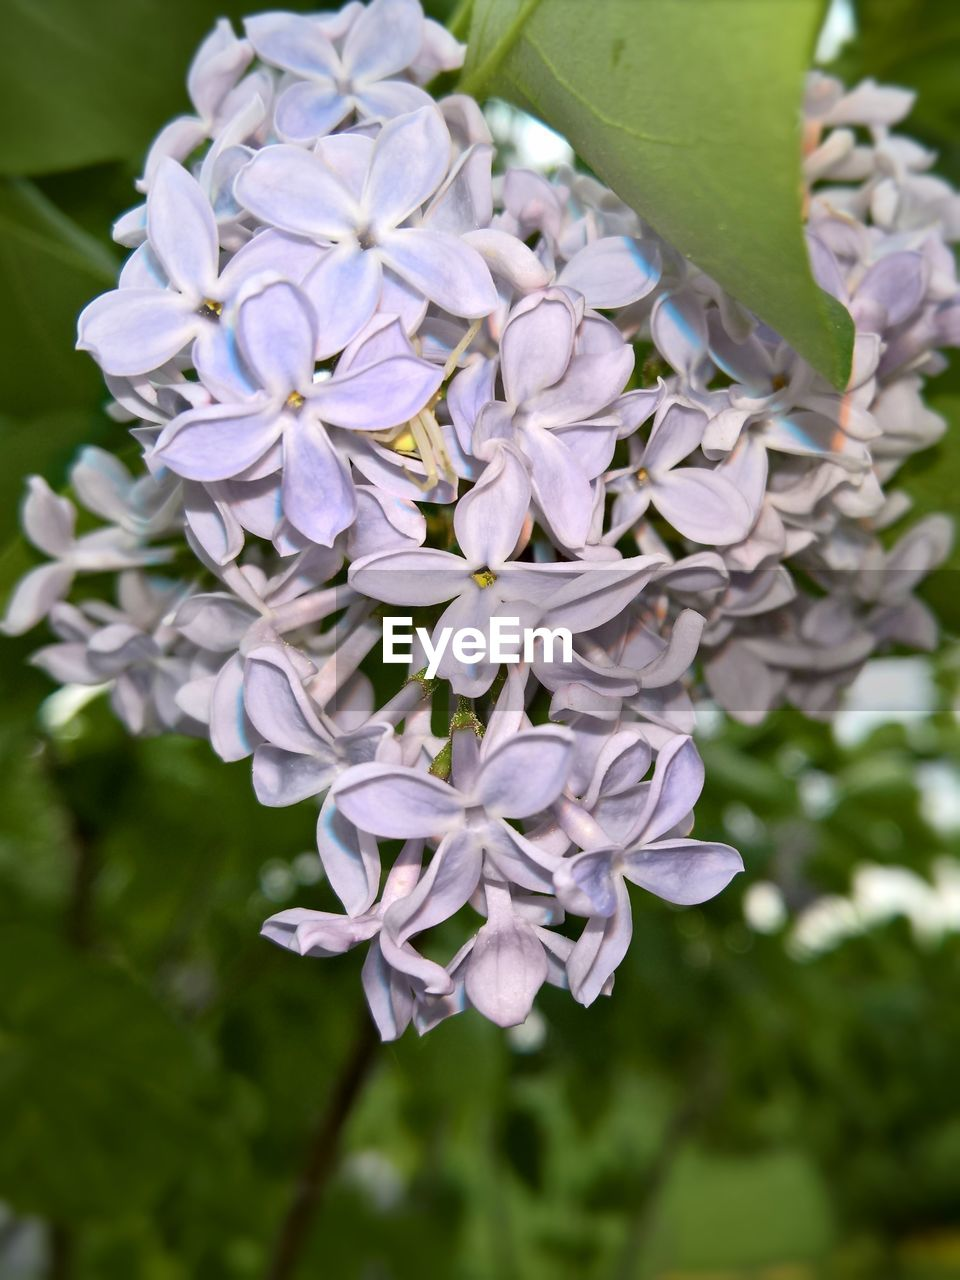 flower, flowering plant, plant, fragility, beauty in nature, vulnerability, freshness, petal, growth, close-up, focus on foreground, inflorescence, flower head, nature, day, no people, white color, purple, outdoors, lilac, bunch of flowers